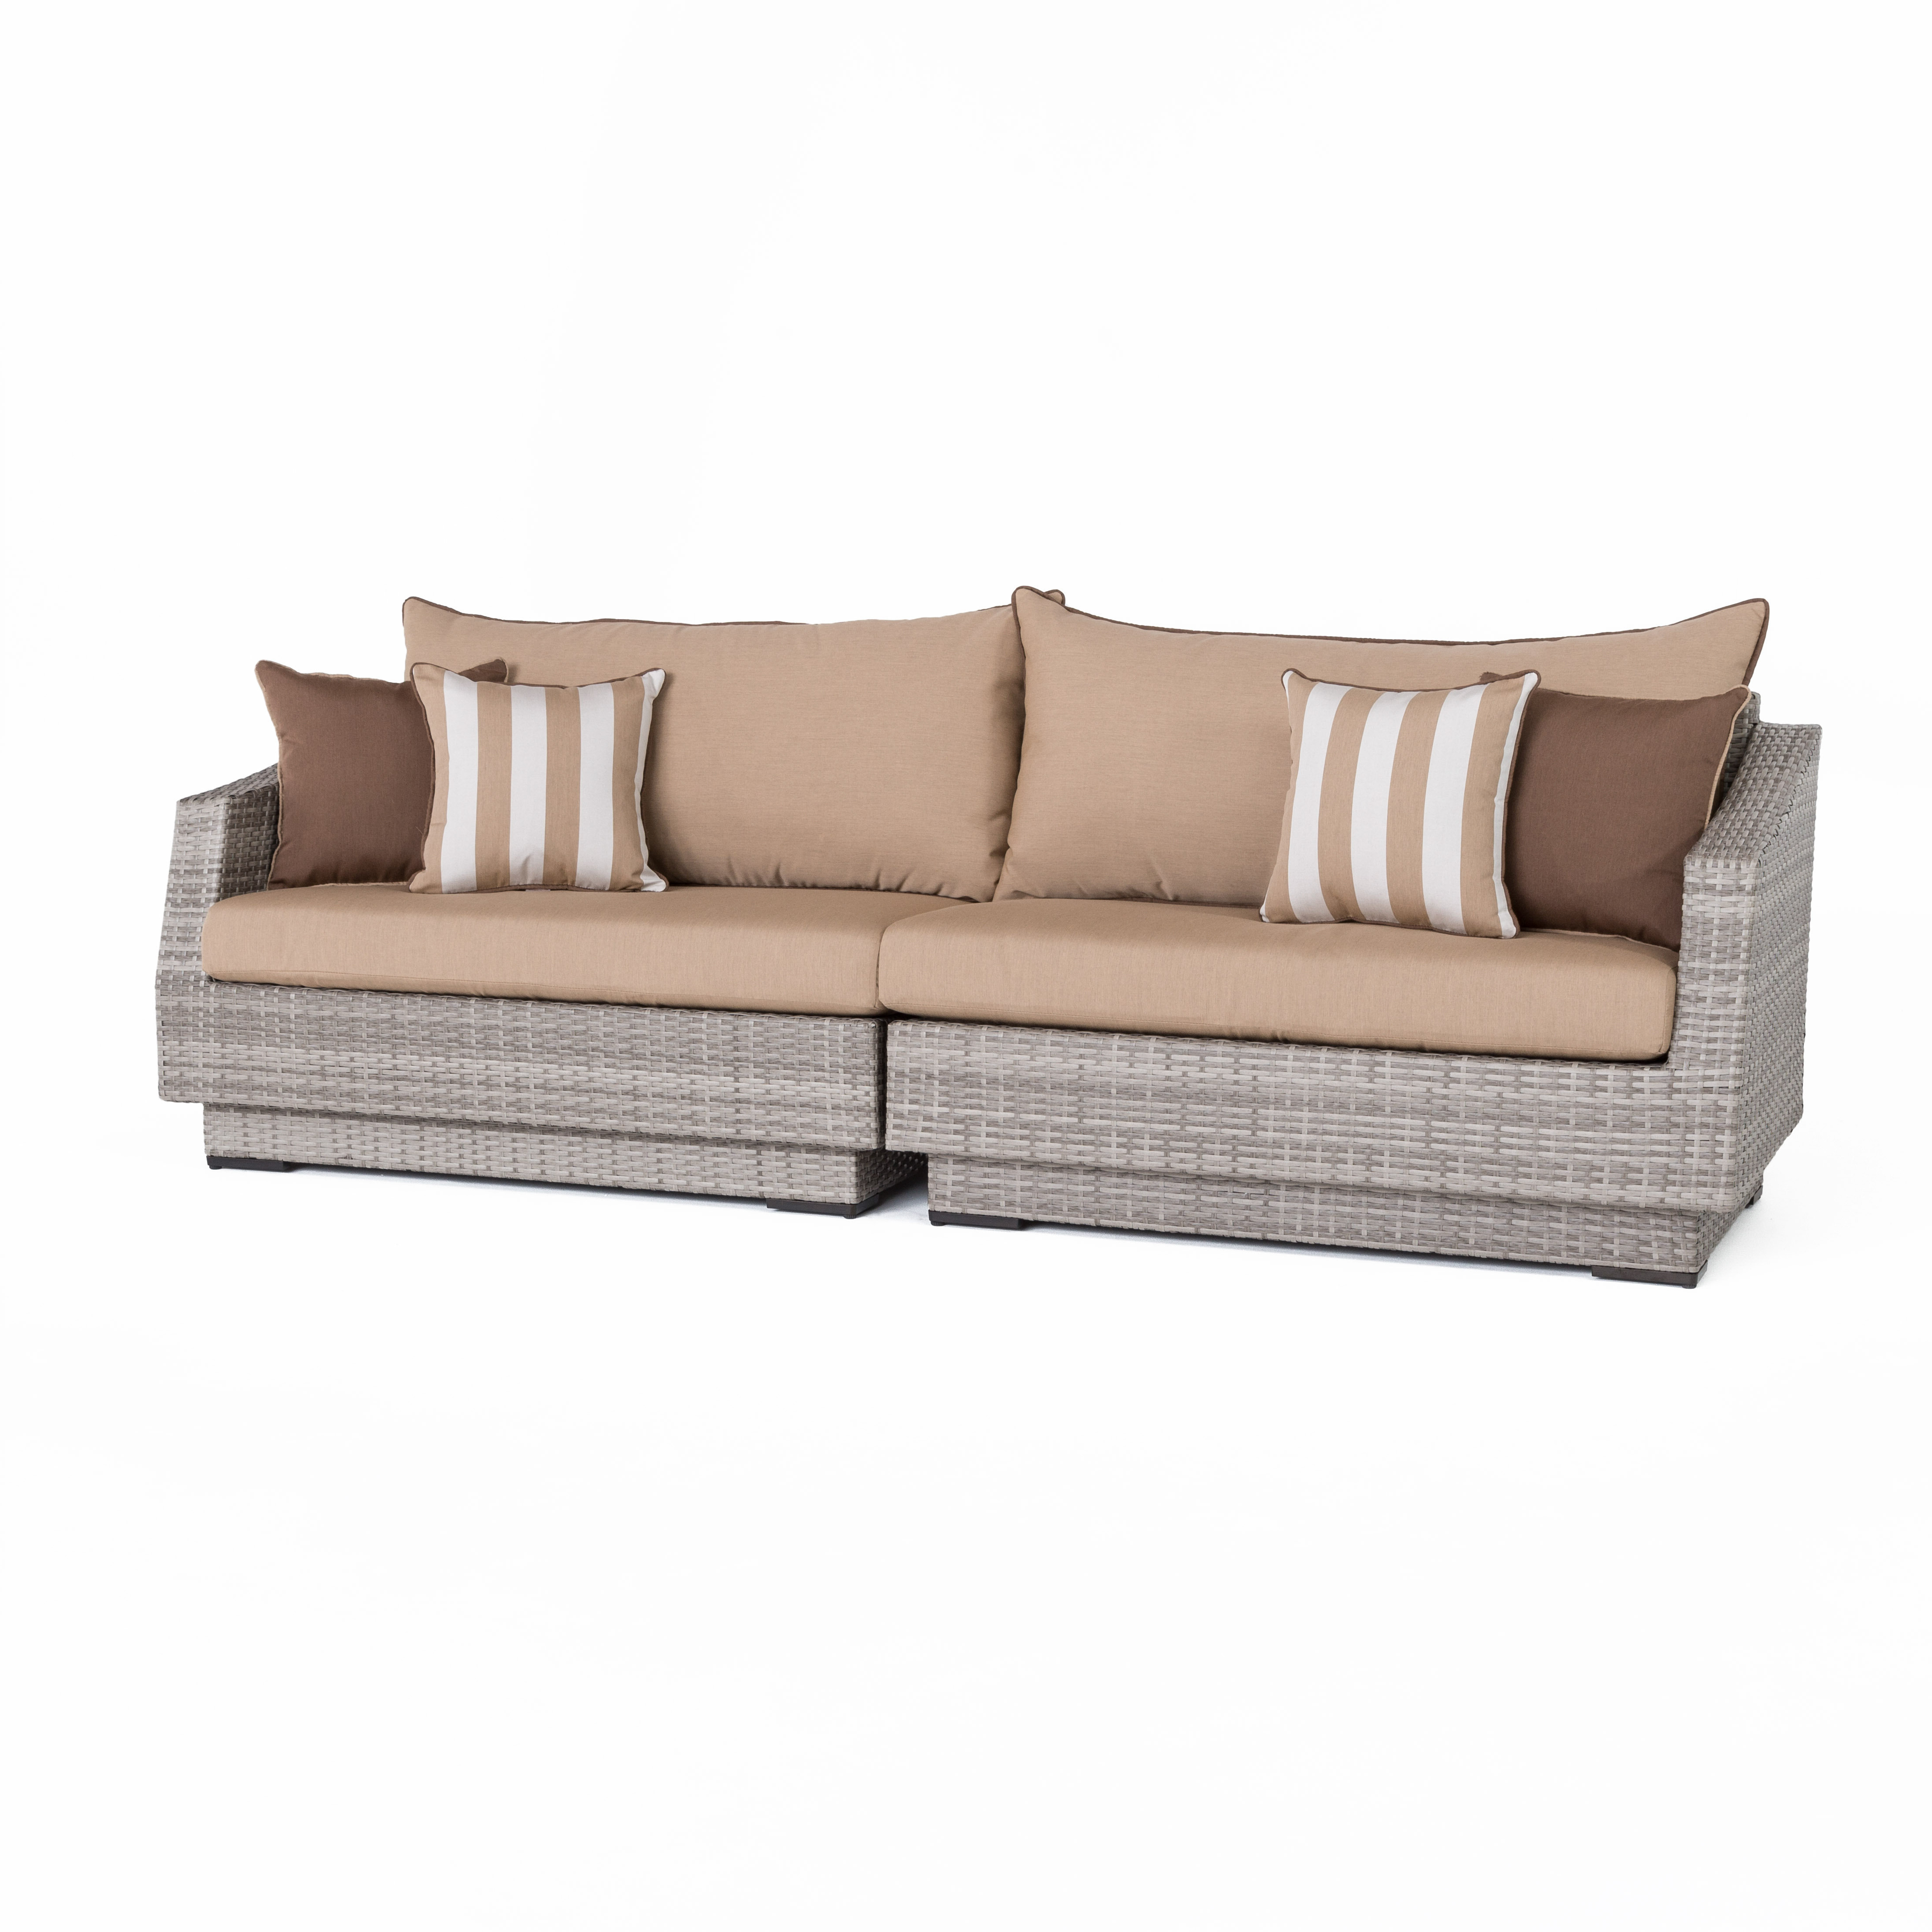 Newest Castelli Patio Sofa With Sunbrella Cushions Inside Castelli Patio Sofas With Sunbrella Cushions (View 16 of 20)